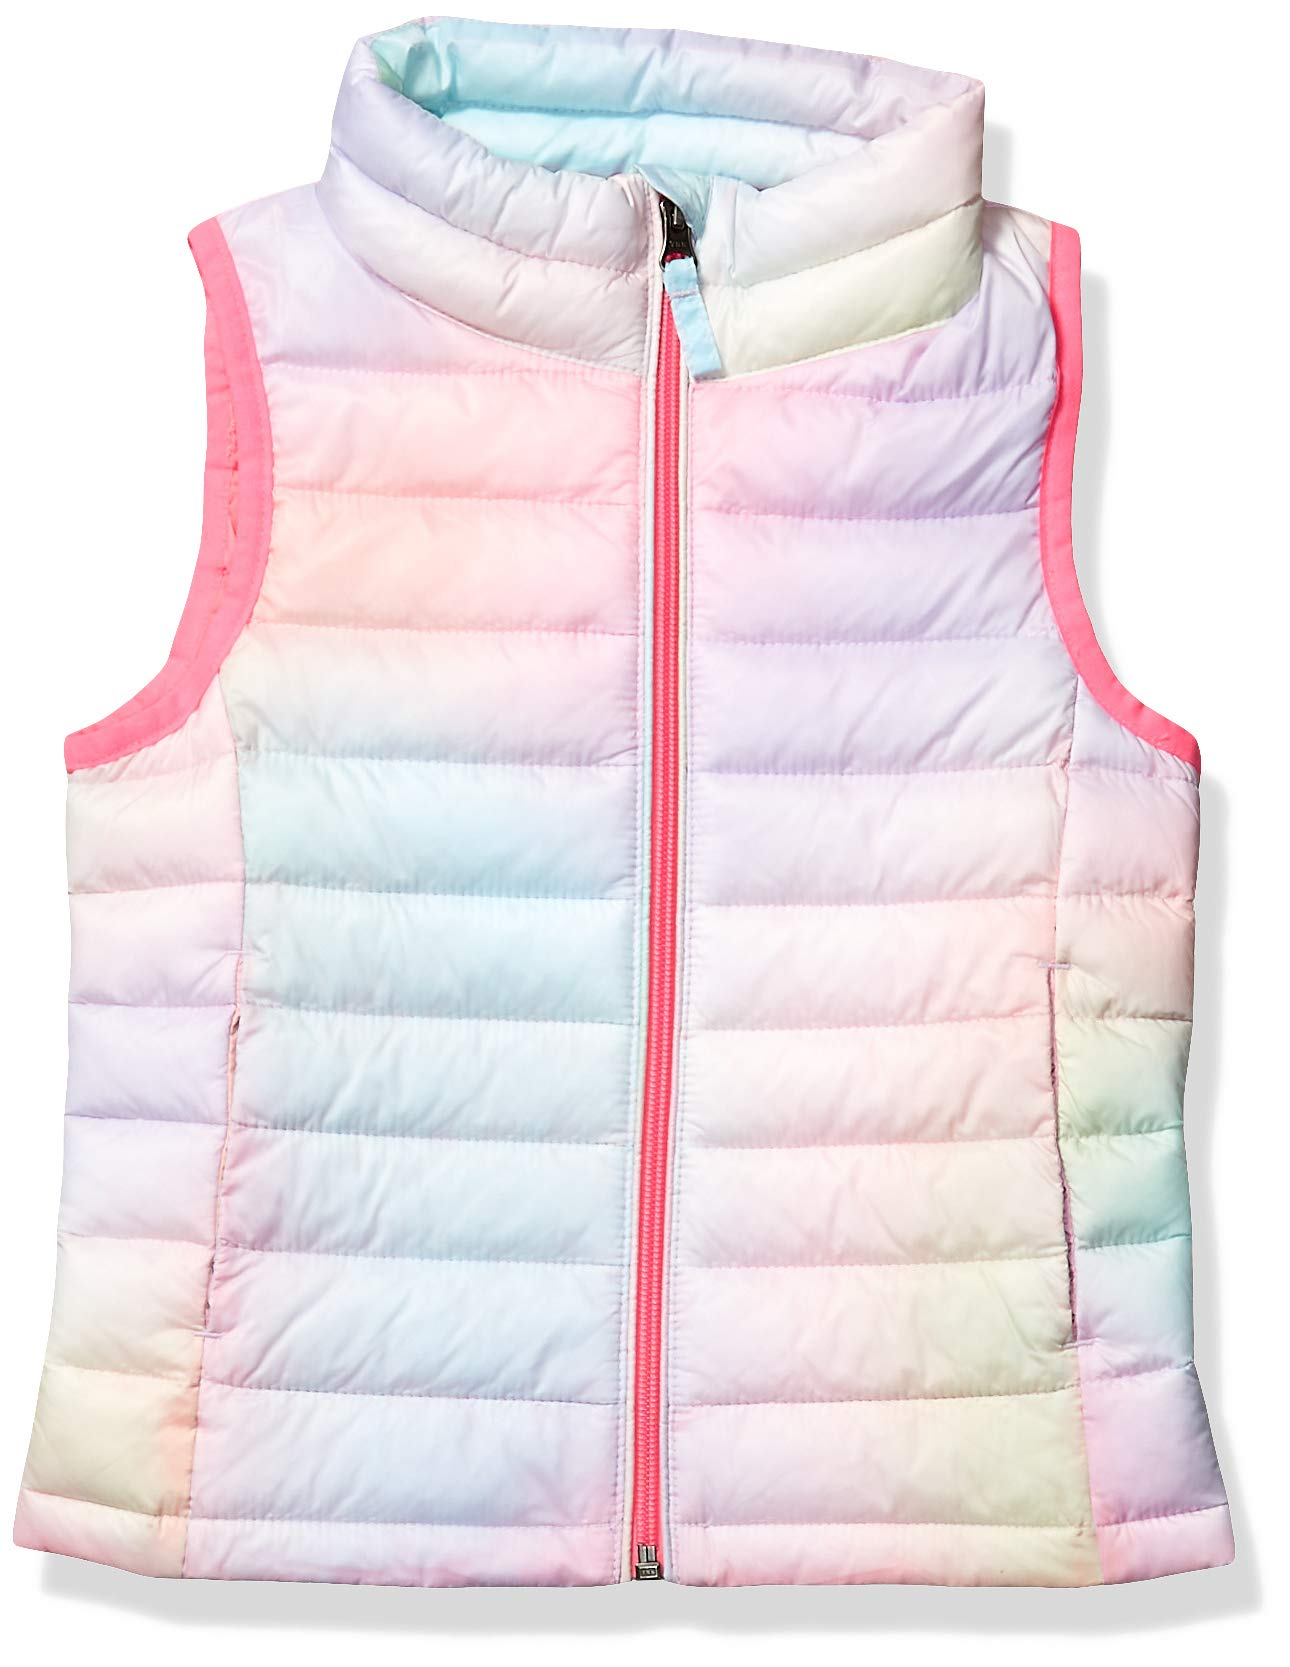 Essentials Boys Light-Weight Water-Resistant Packable Puffer Vests